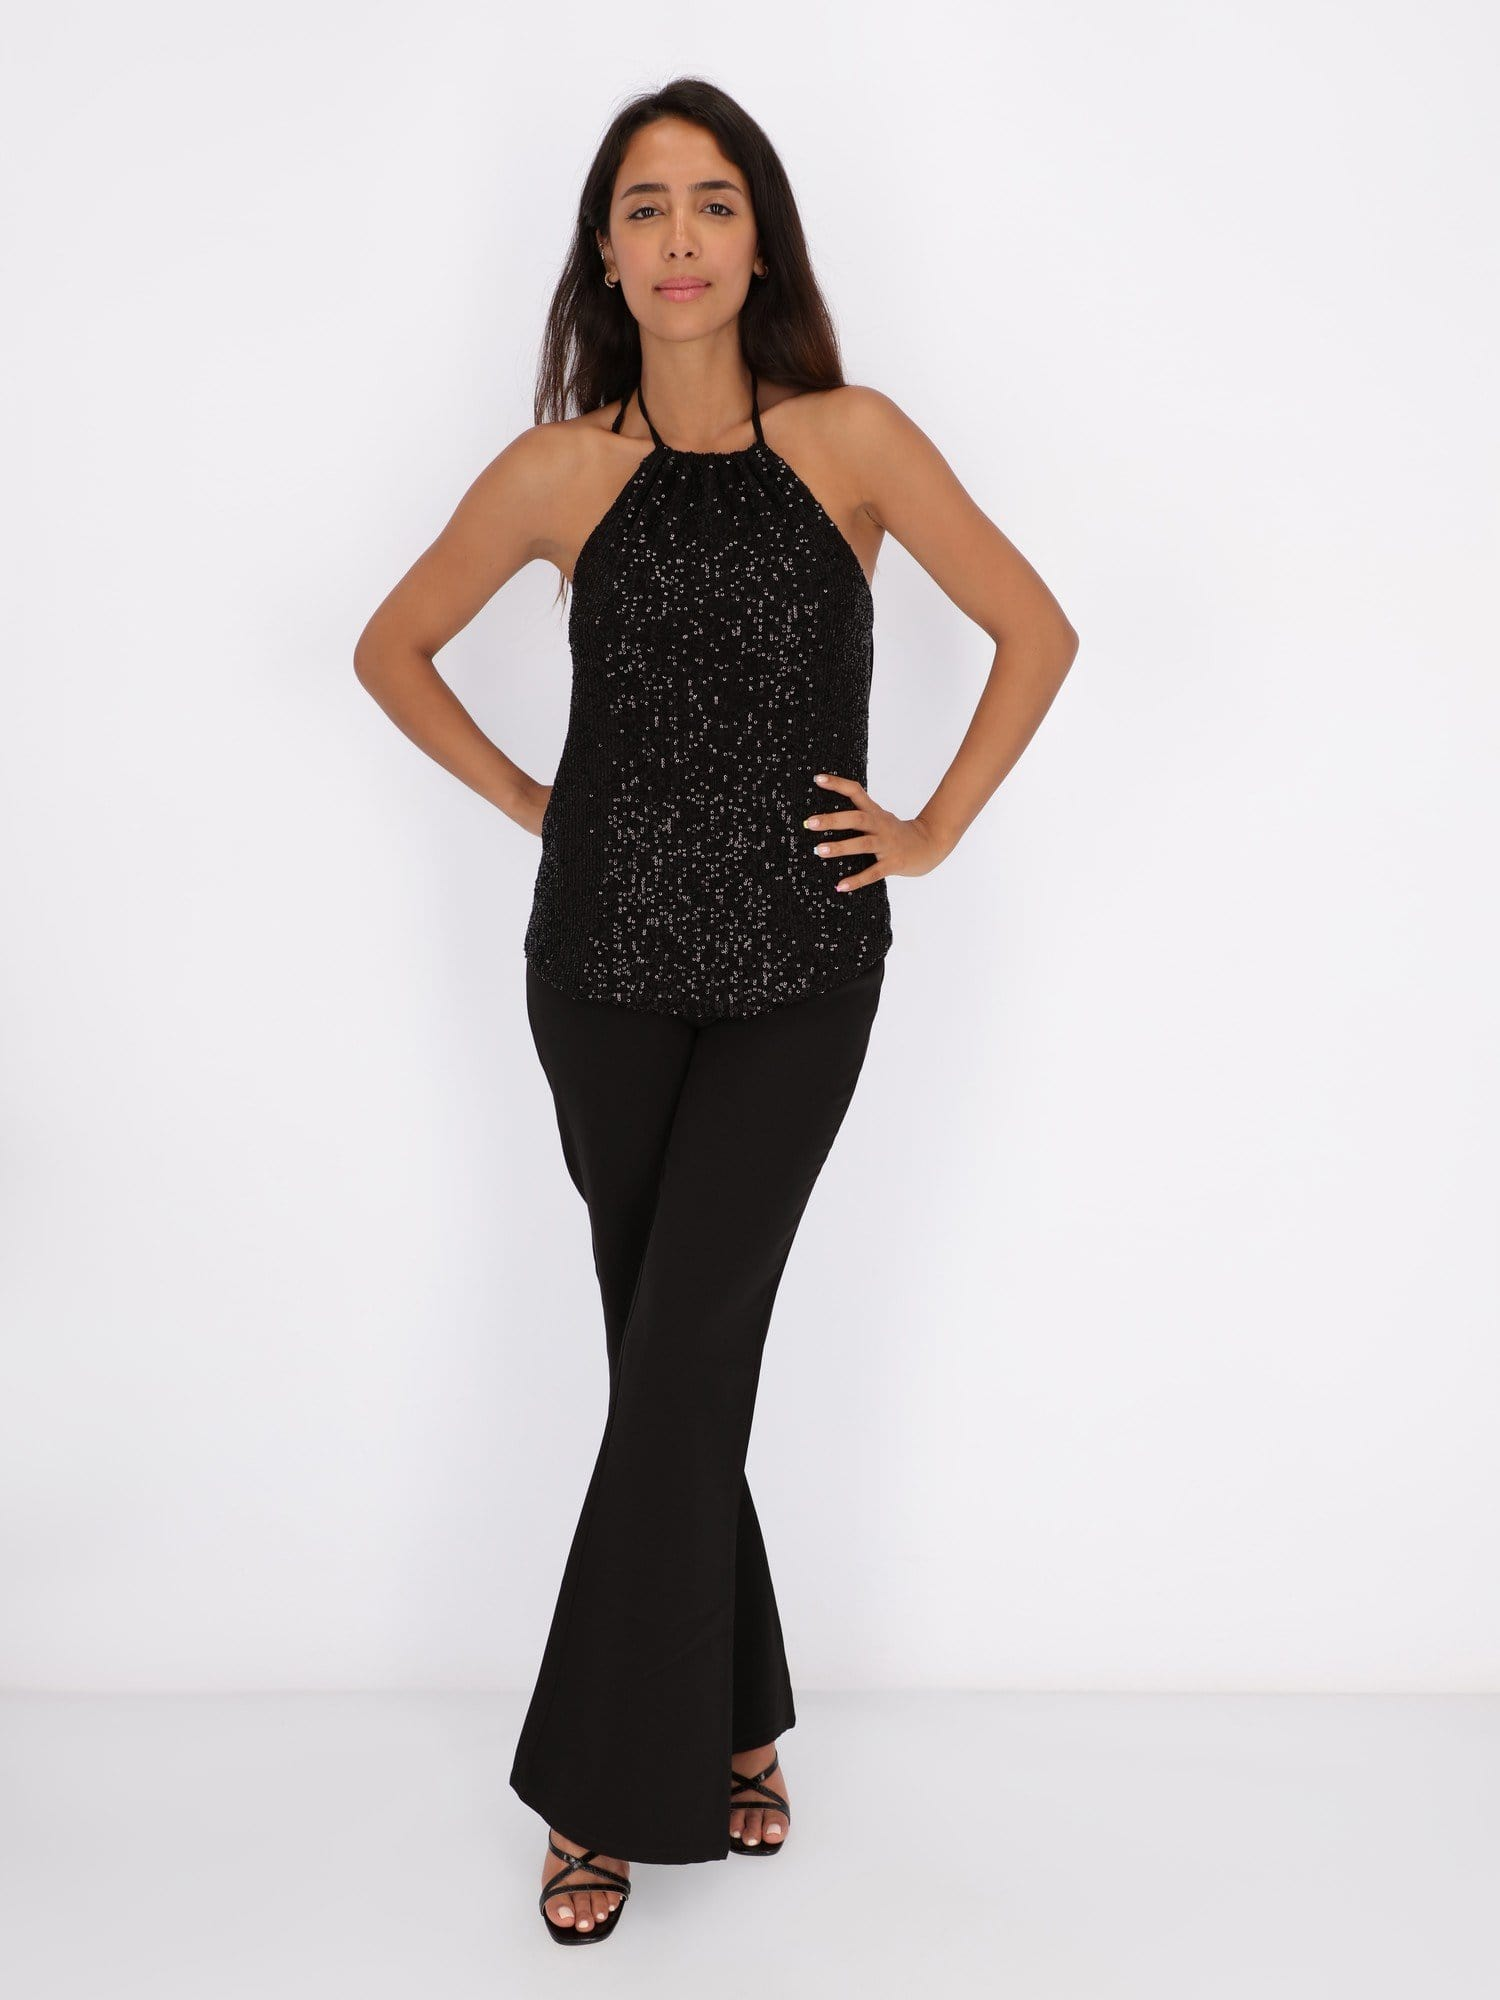 OR Tops & Blouses Top with Halter Neck and Open Back Drape